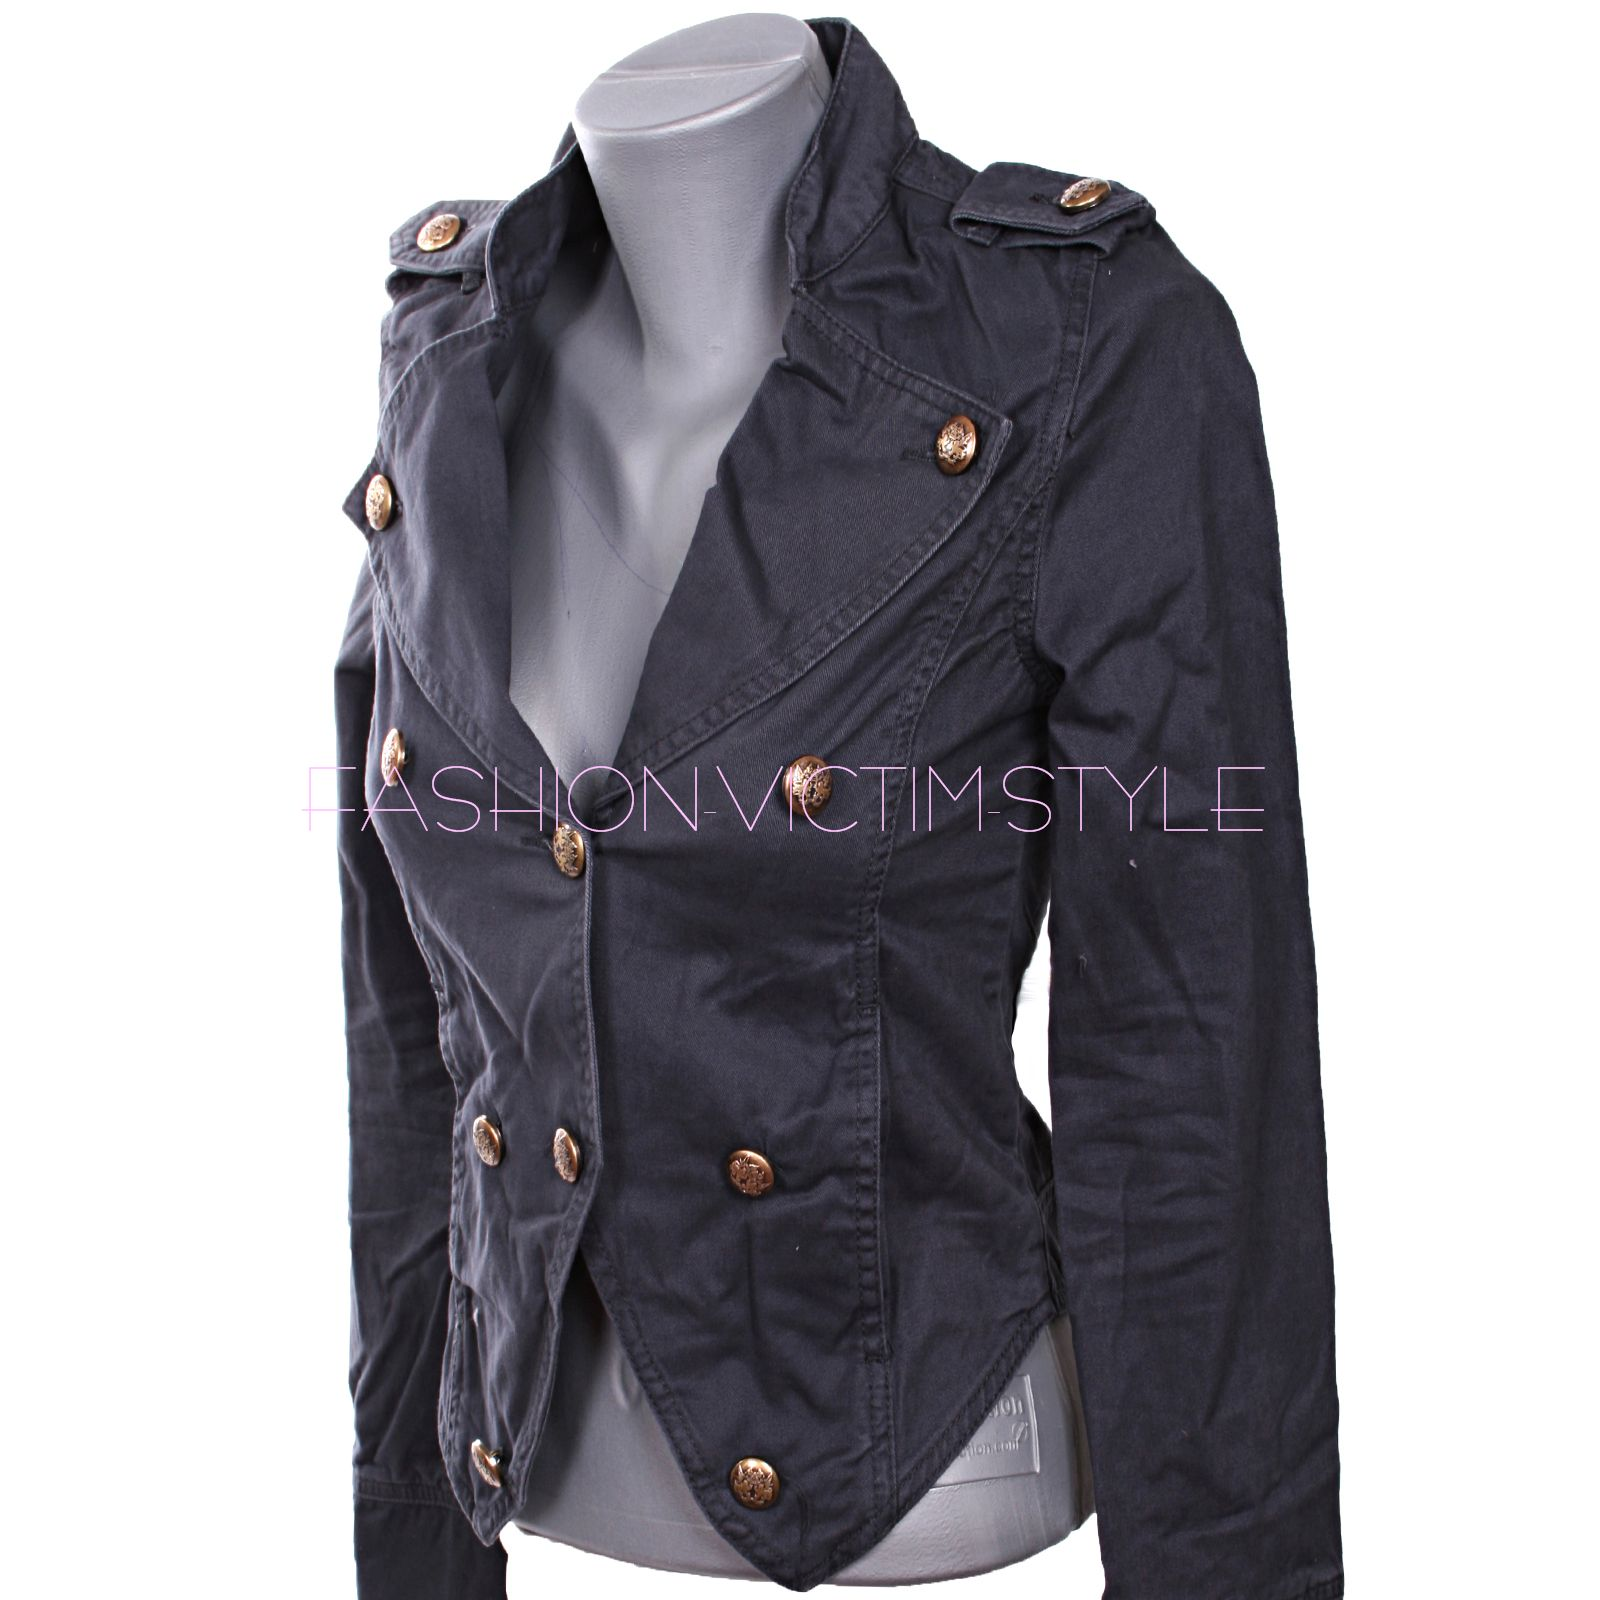 neu damen jacke blazer military style blau olive. Black Bedroom Furniture Sets. Home Design Ideas